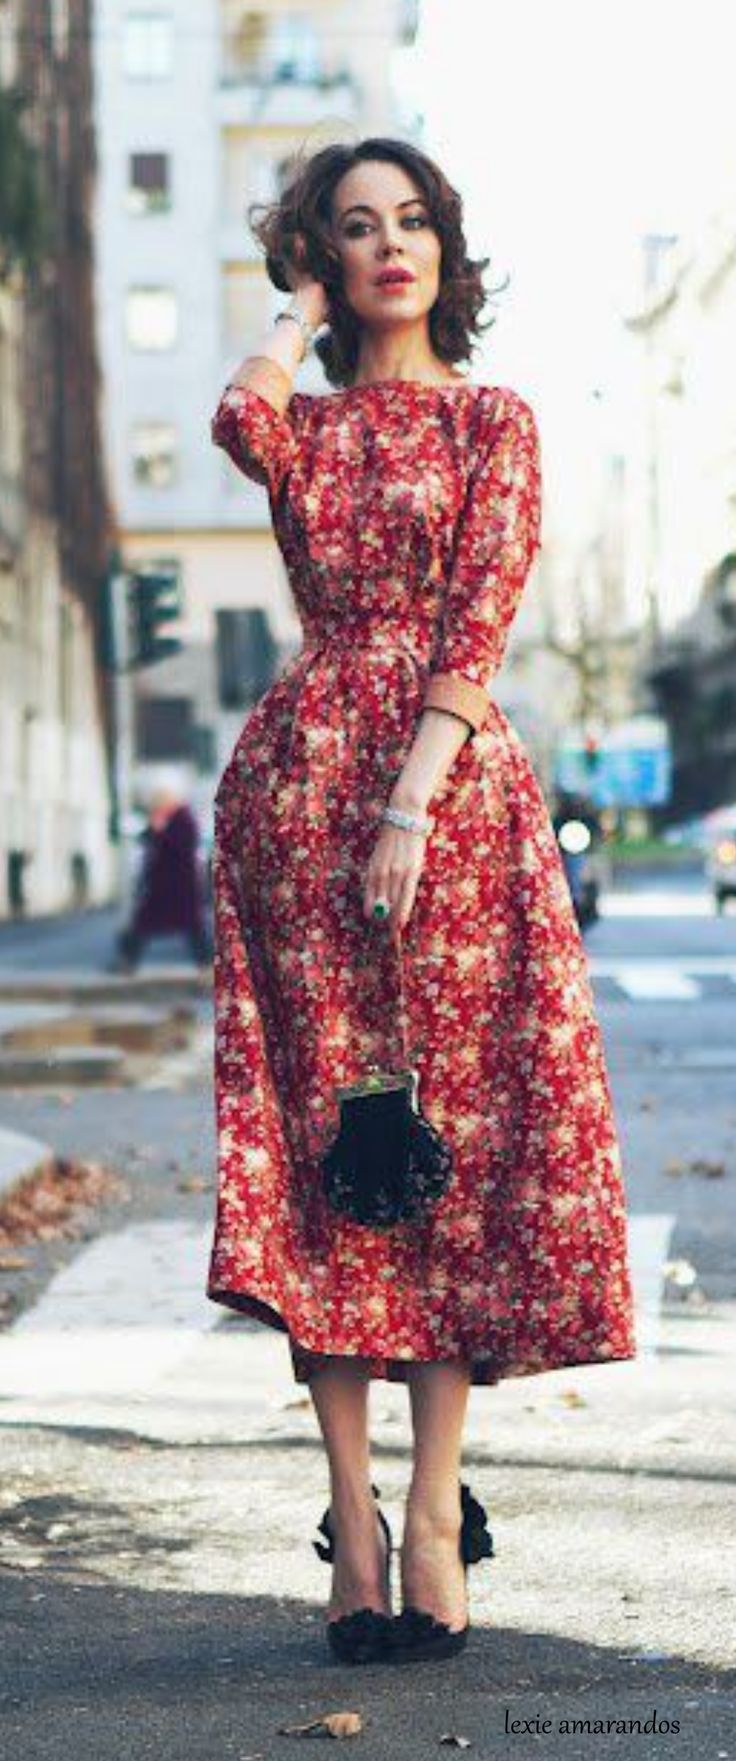 Ulyana Sergeenko - pretty floral dress with the perfect shade of lipstick. 2d20922259c